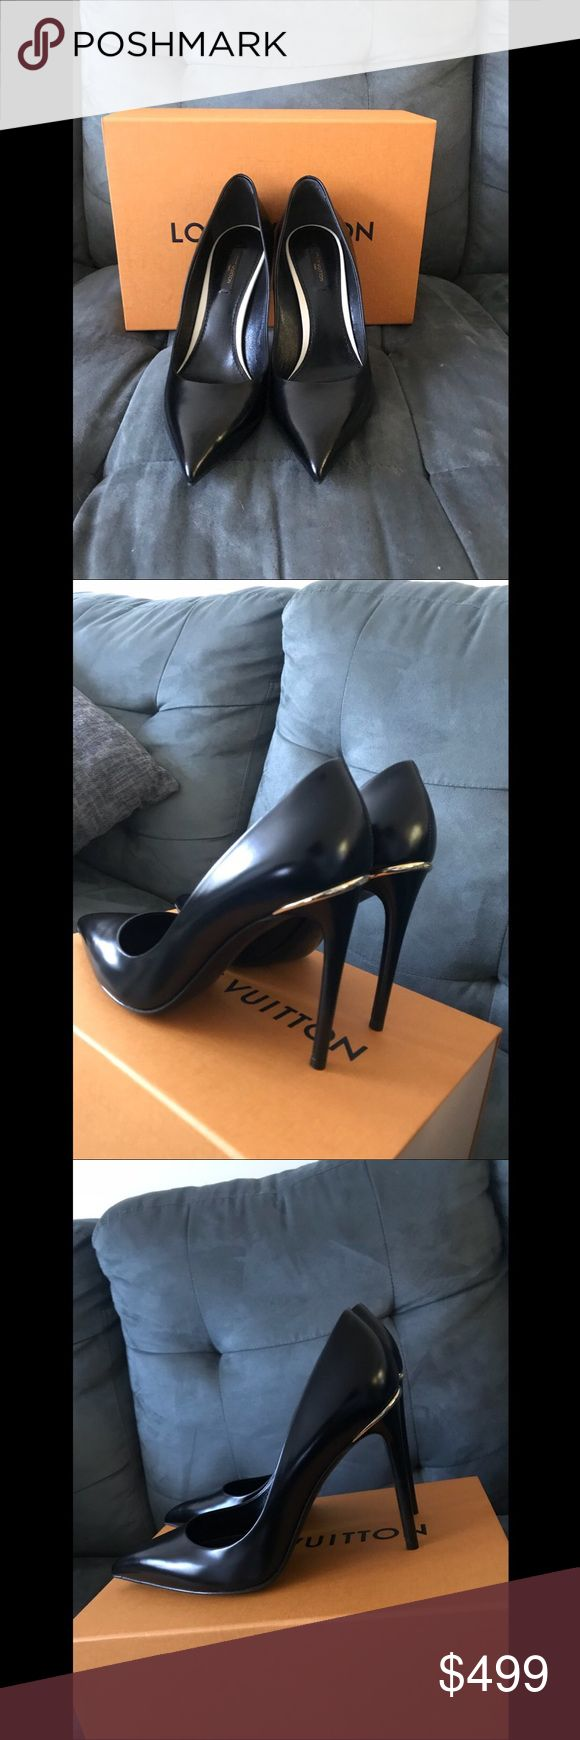 100% Authentic Louis Vuitton Eyeline US10 in Black 100% Authentic Louis Vuitton Eyeline US10 in Black. Brand new comes in LV orange box and dust bags Louis Vuitton Shoes Heels